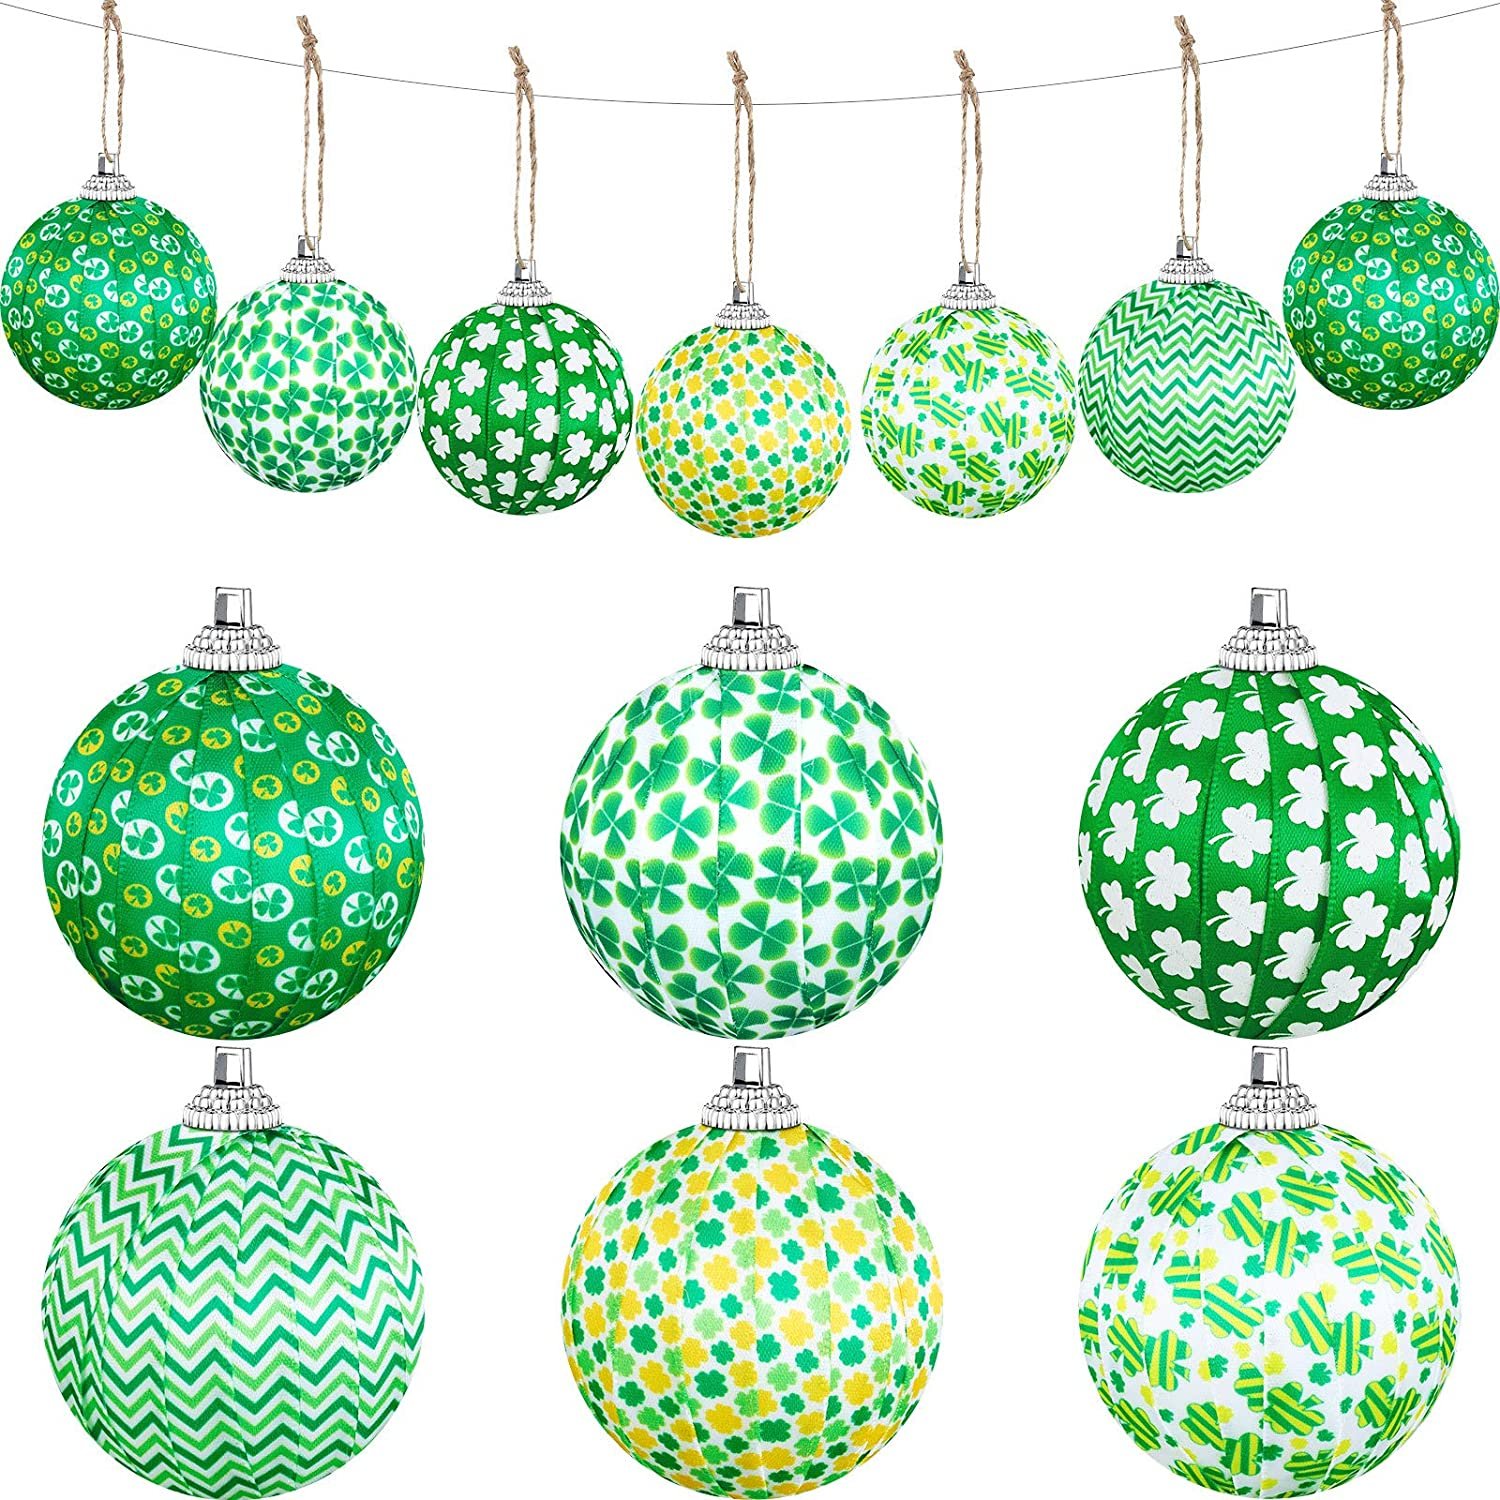 18 Pieces St. Patrick's Day Ornaments Hanging Balls Green Shamrock Fabric Wrapped Balls Decorations Hanging Ball Decorative Supplies for St. Patrick's Day Party Home Decorations, 6 Designs